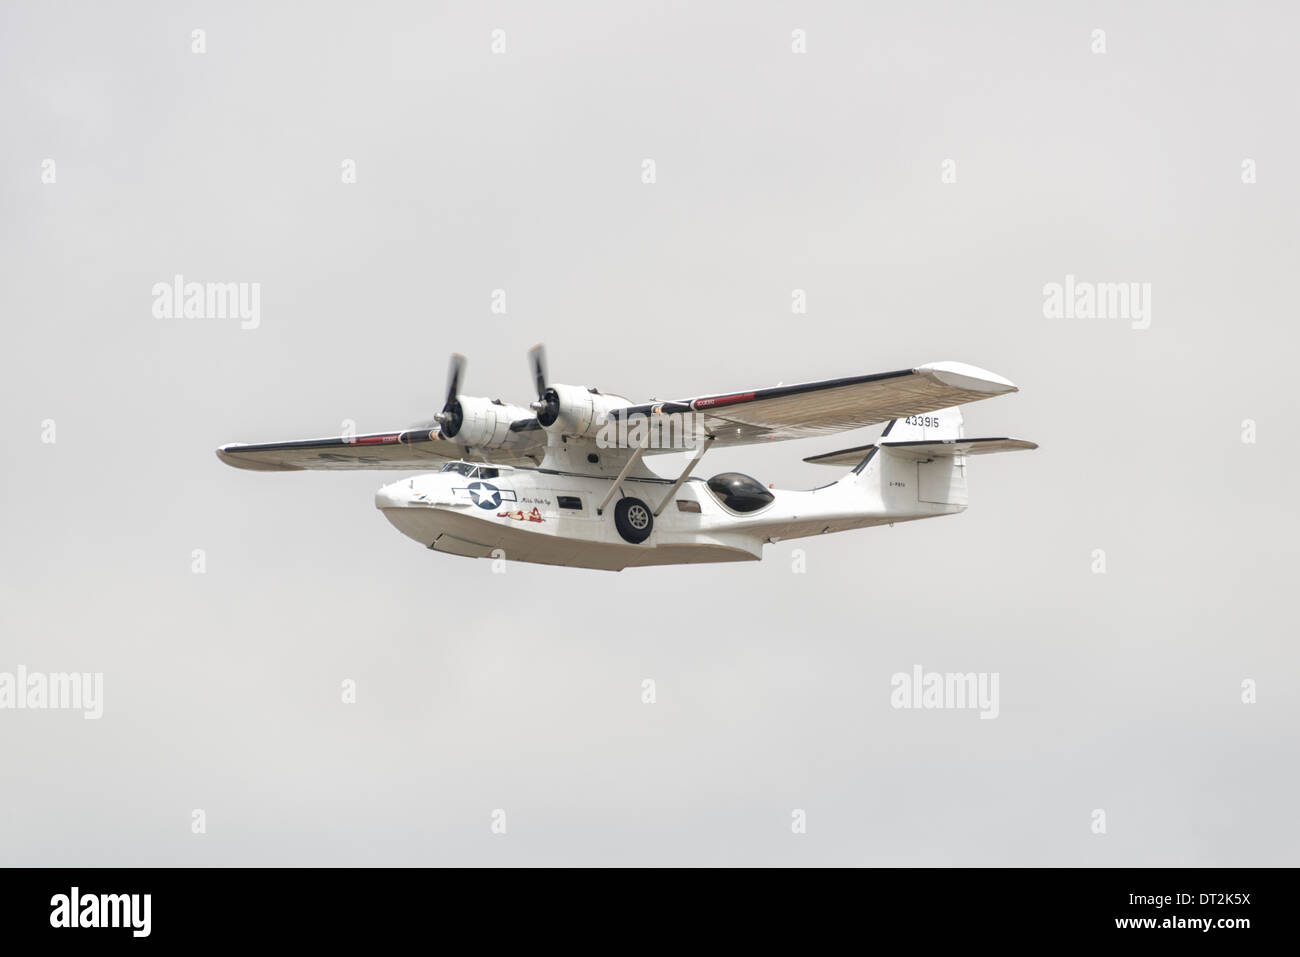 Plane Sailing's Consolidated PBY Catalina seaplane displays at at the 2013 Royal International Air Tattoo. - Stock Image